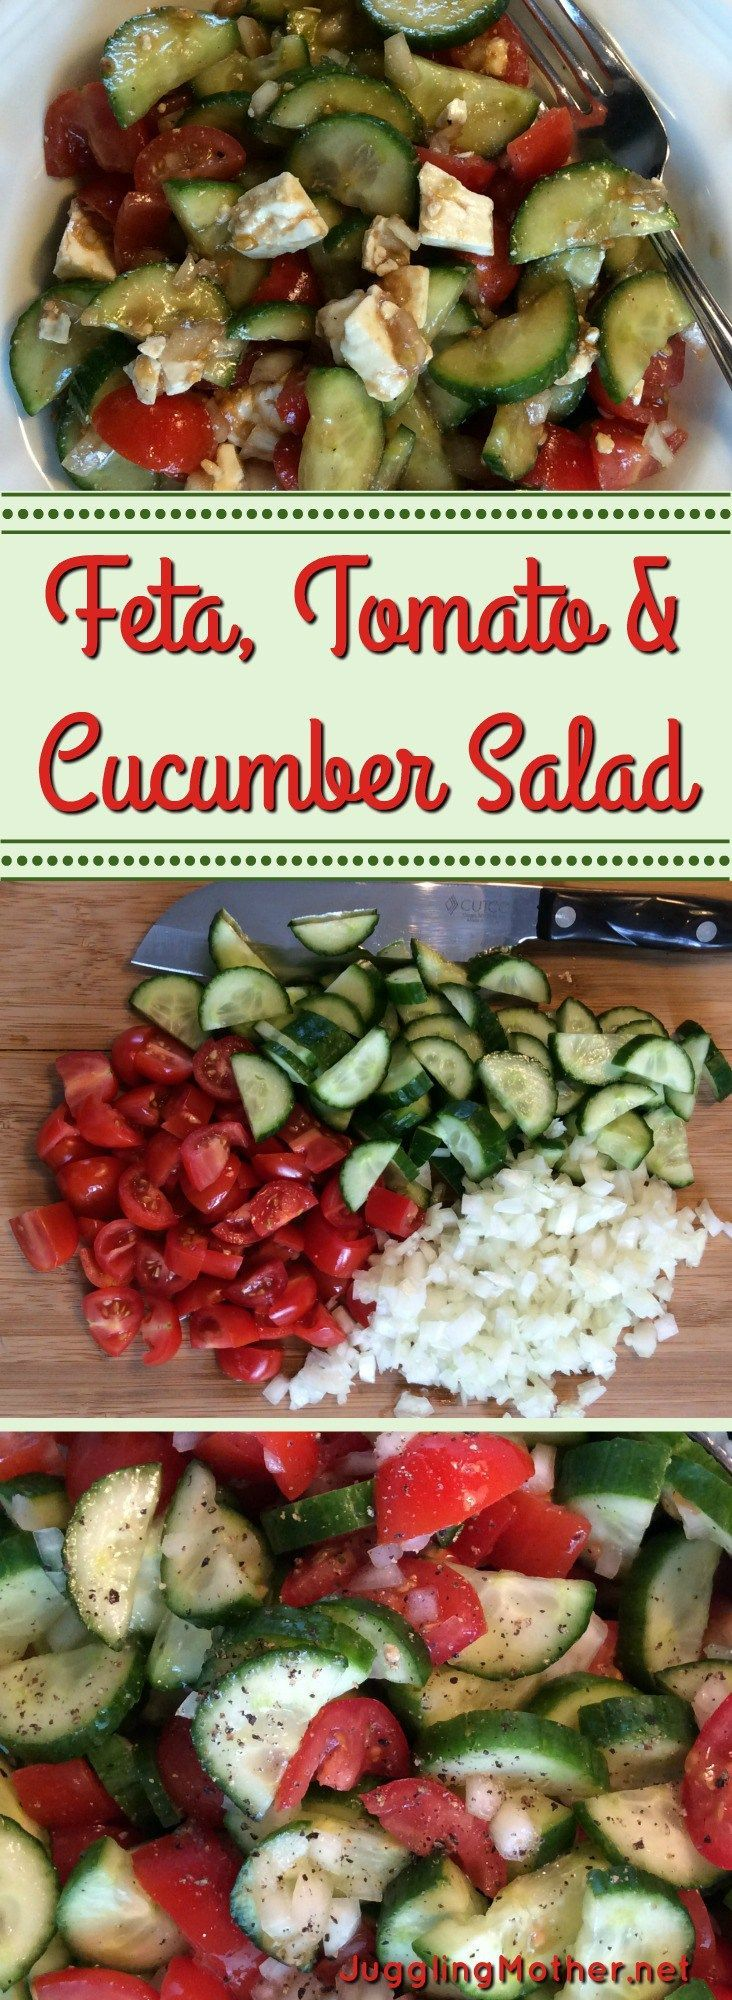 "Feta, Tomato and Cucumber Salad takes just minutes to concoct. This is one of my easiest ""throw together"" salads, with four ingredients."